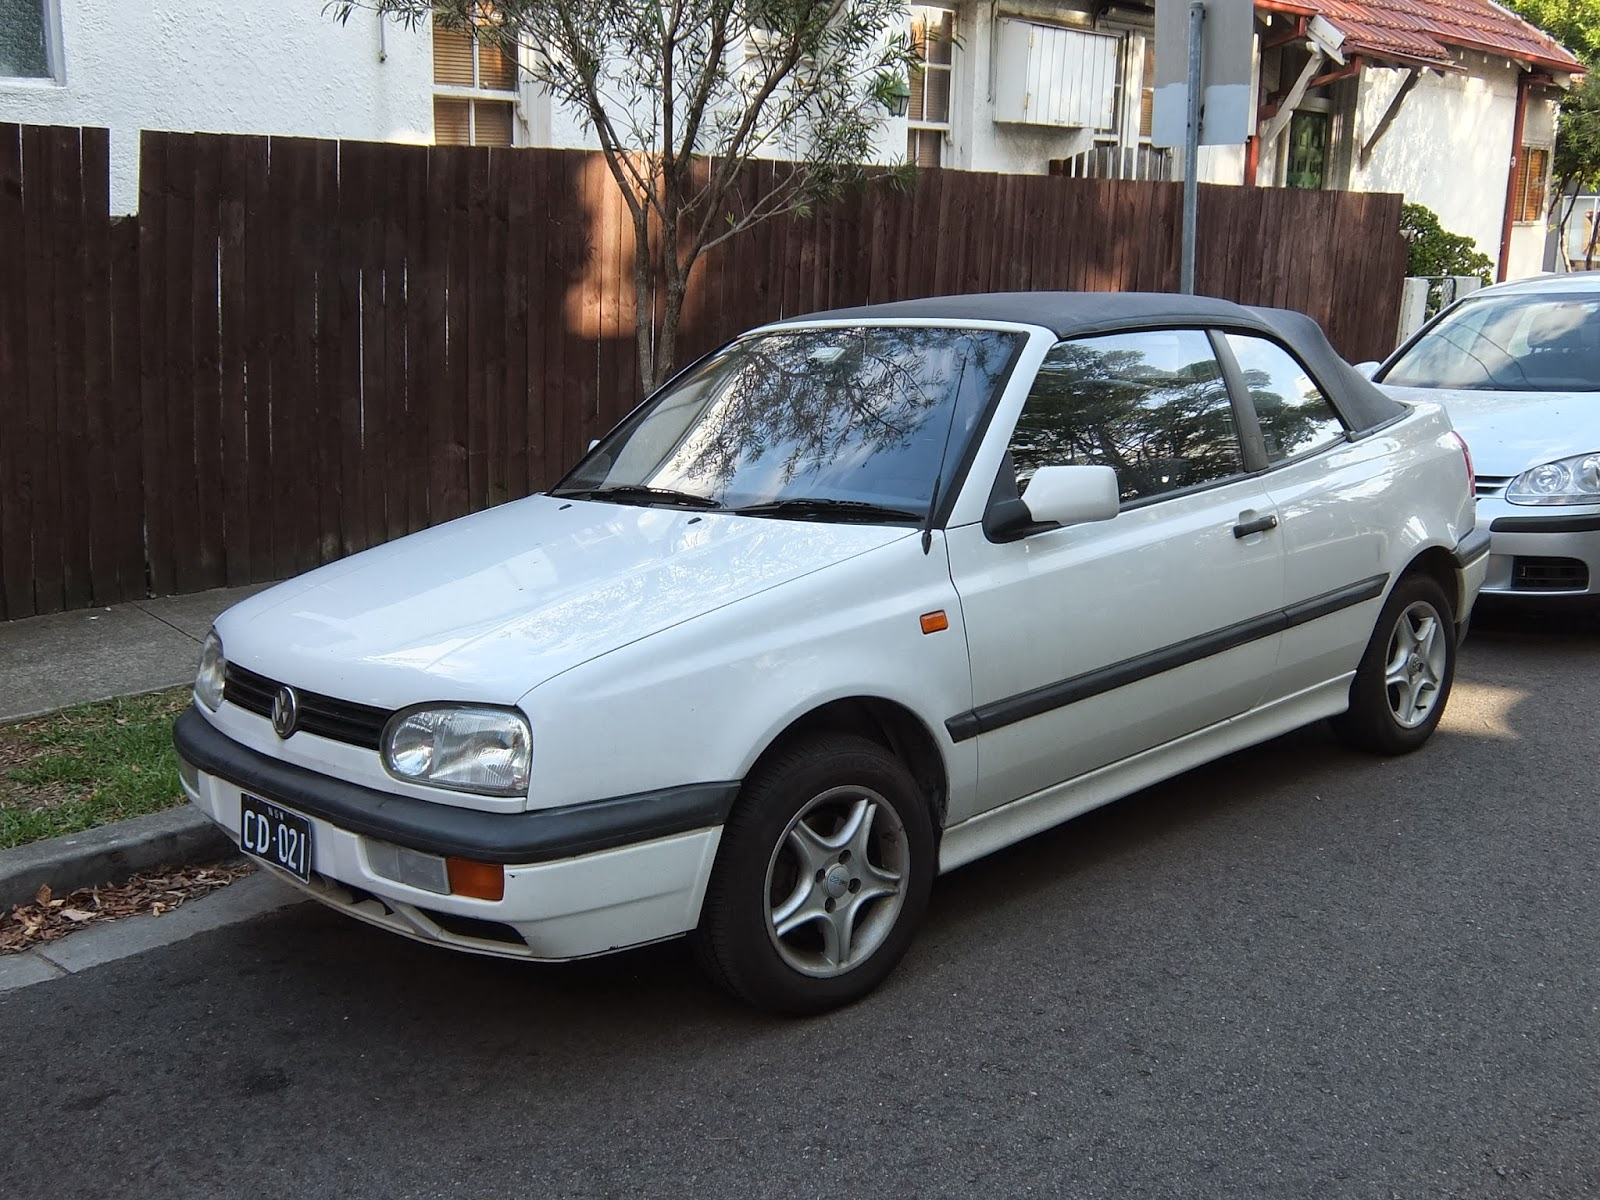 aussie old parked cars 1995 volkswagen golf mk3 cabriolet. Black Bedroom Furniture Sets. Home Design Ideas